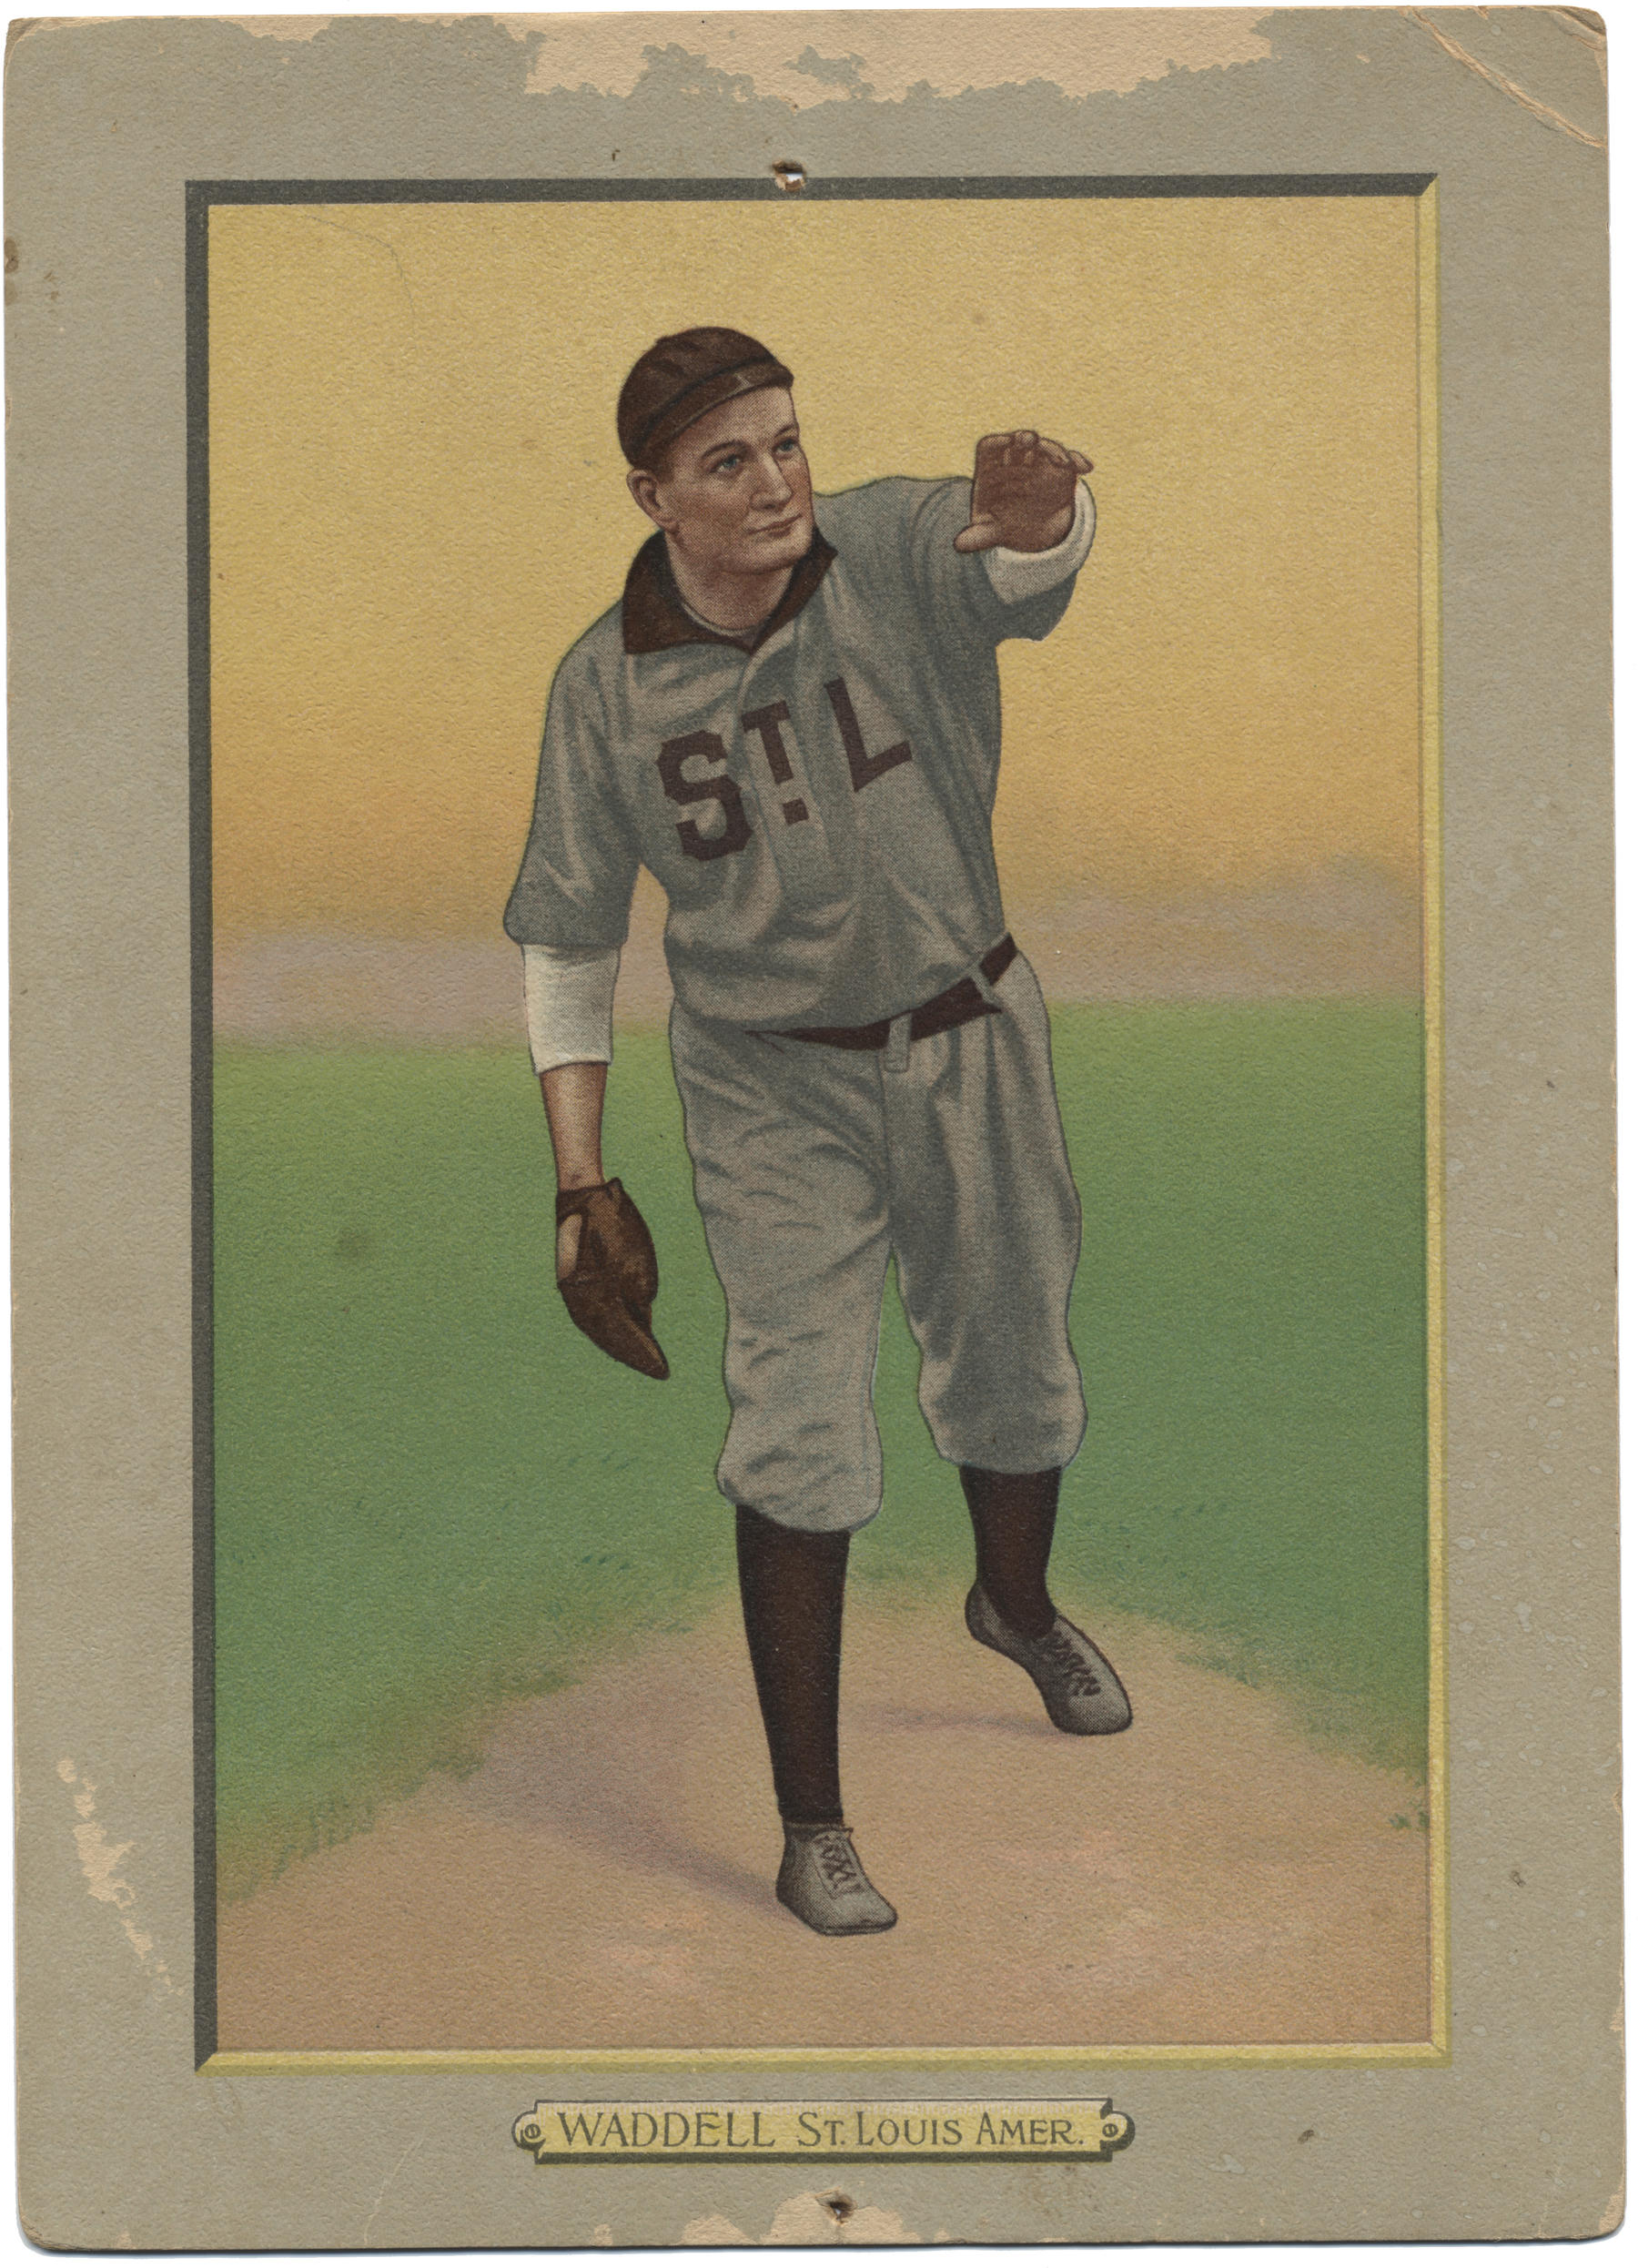 This Turkey Red tobacco card from 1911 shows Rube Waddell with his final big league club, the St. Louis Browns, though the image is clearly based on the Conlon photo taken years earlier. - B-140.37 (National Baseball Hall of Fame Library)